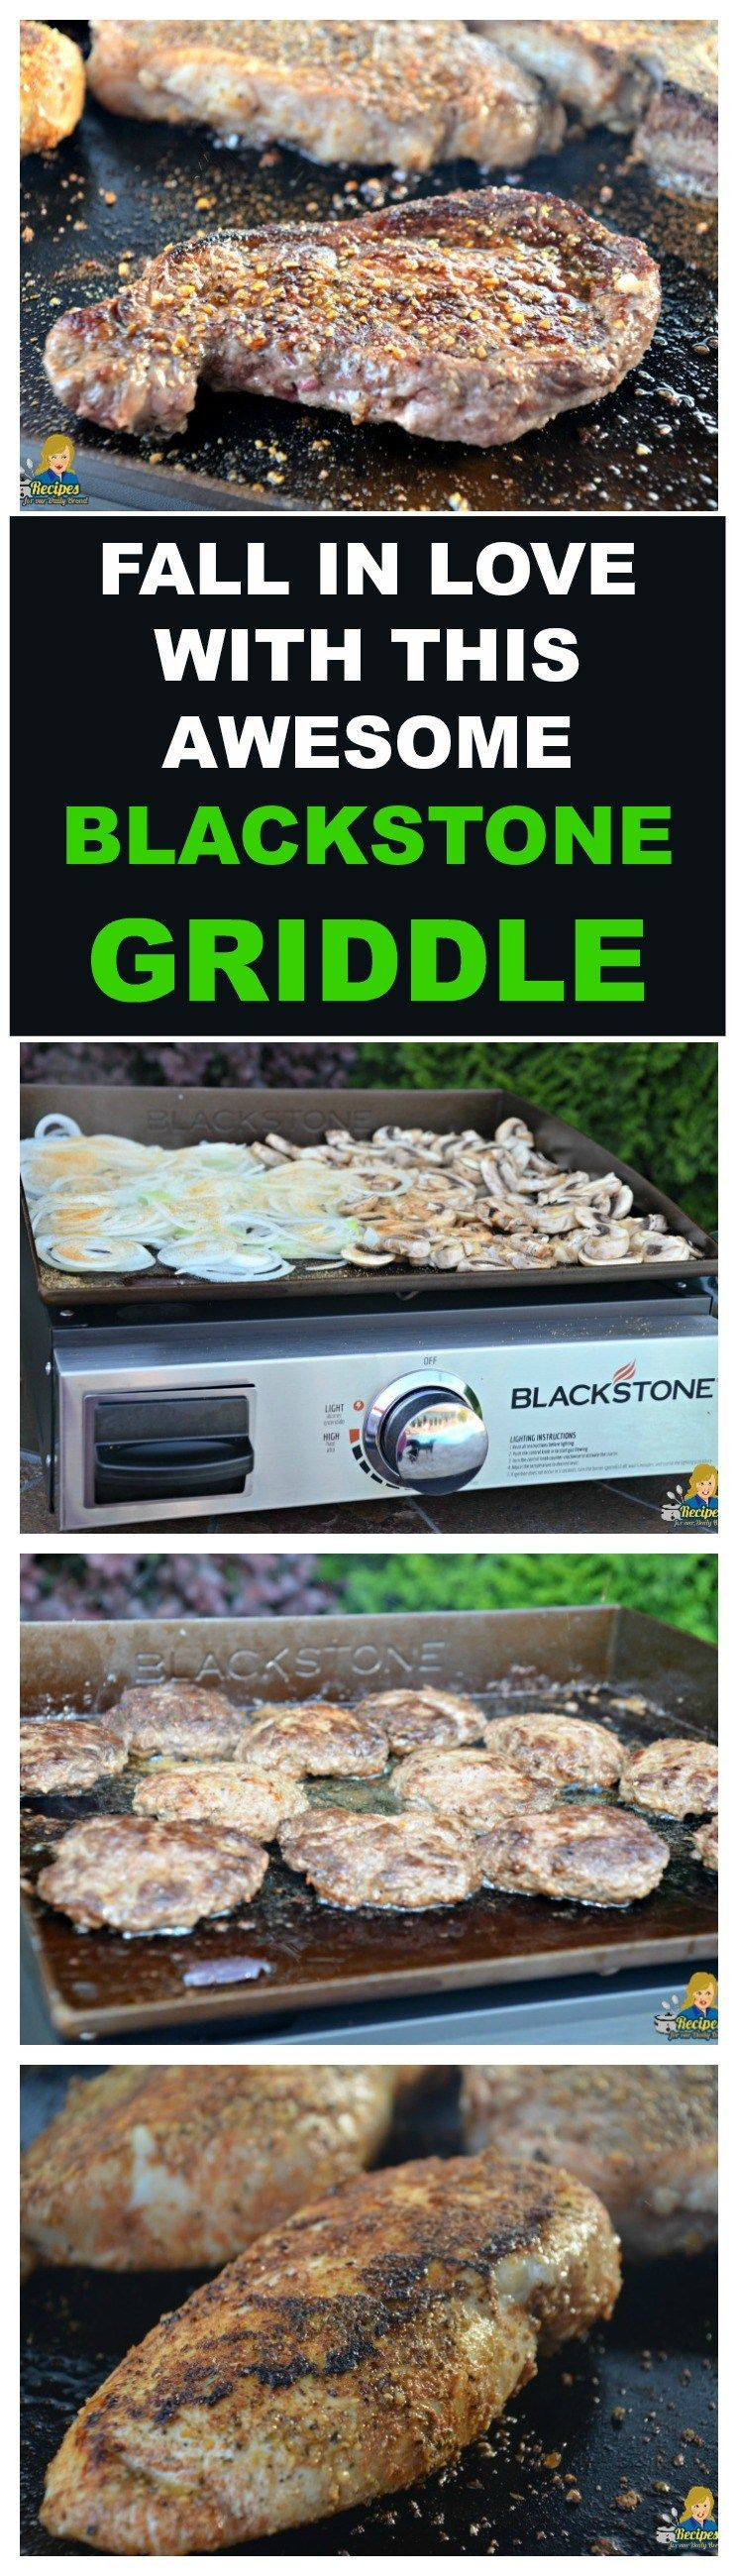 Fall In Love With This Awesome Blackstone Griddle Blackstone Griddle Griddle Recipes Griddle Cooking Recipes